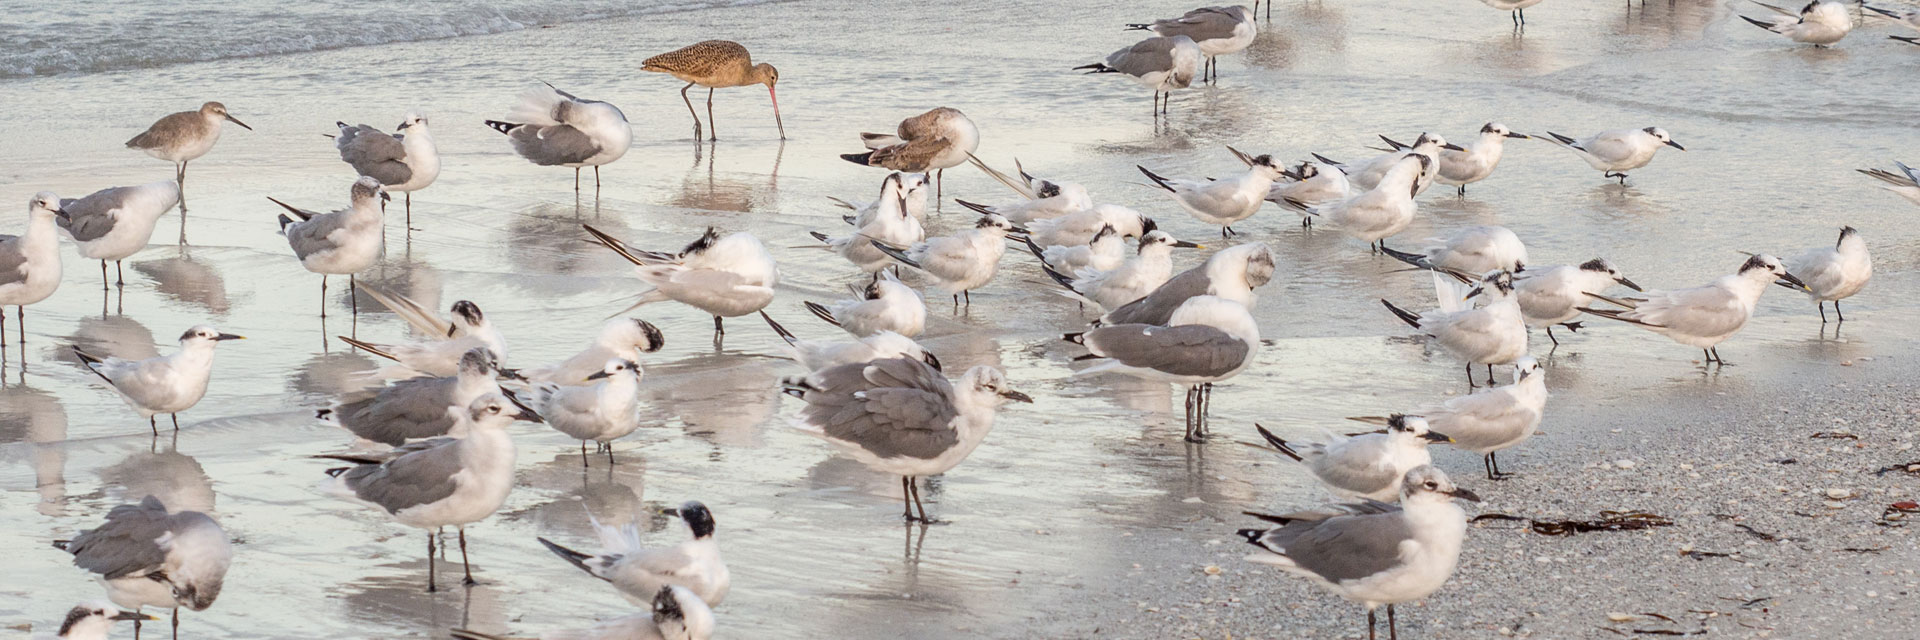 Sea birds at the waters edge.